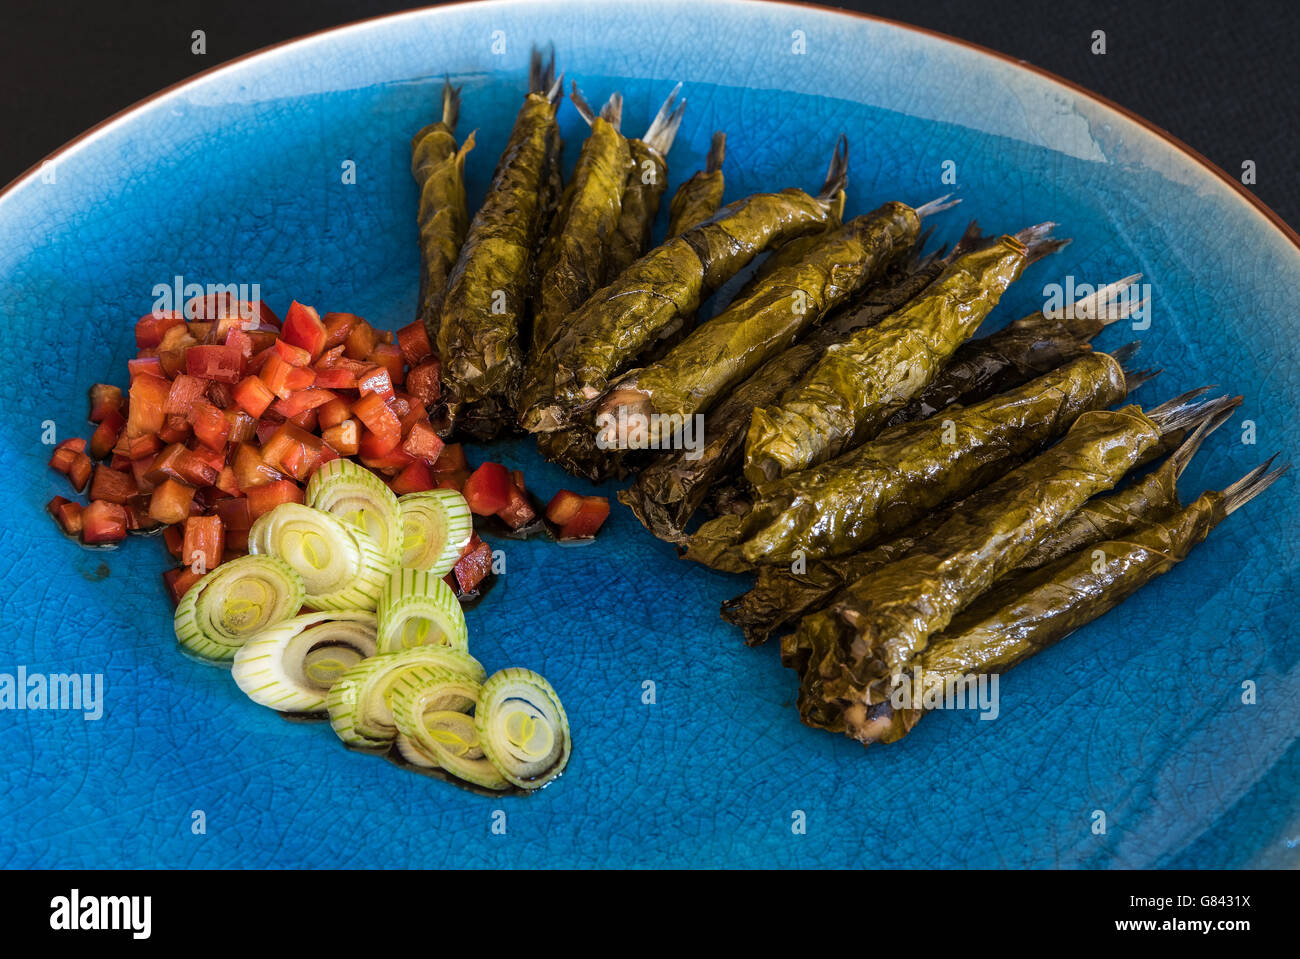 Anchovies in vine leaves, served with tomato salad and onions in blue plate - Stock Image